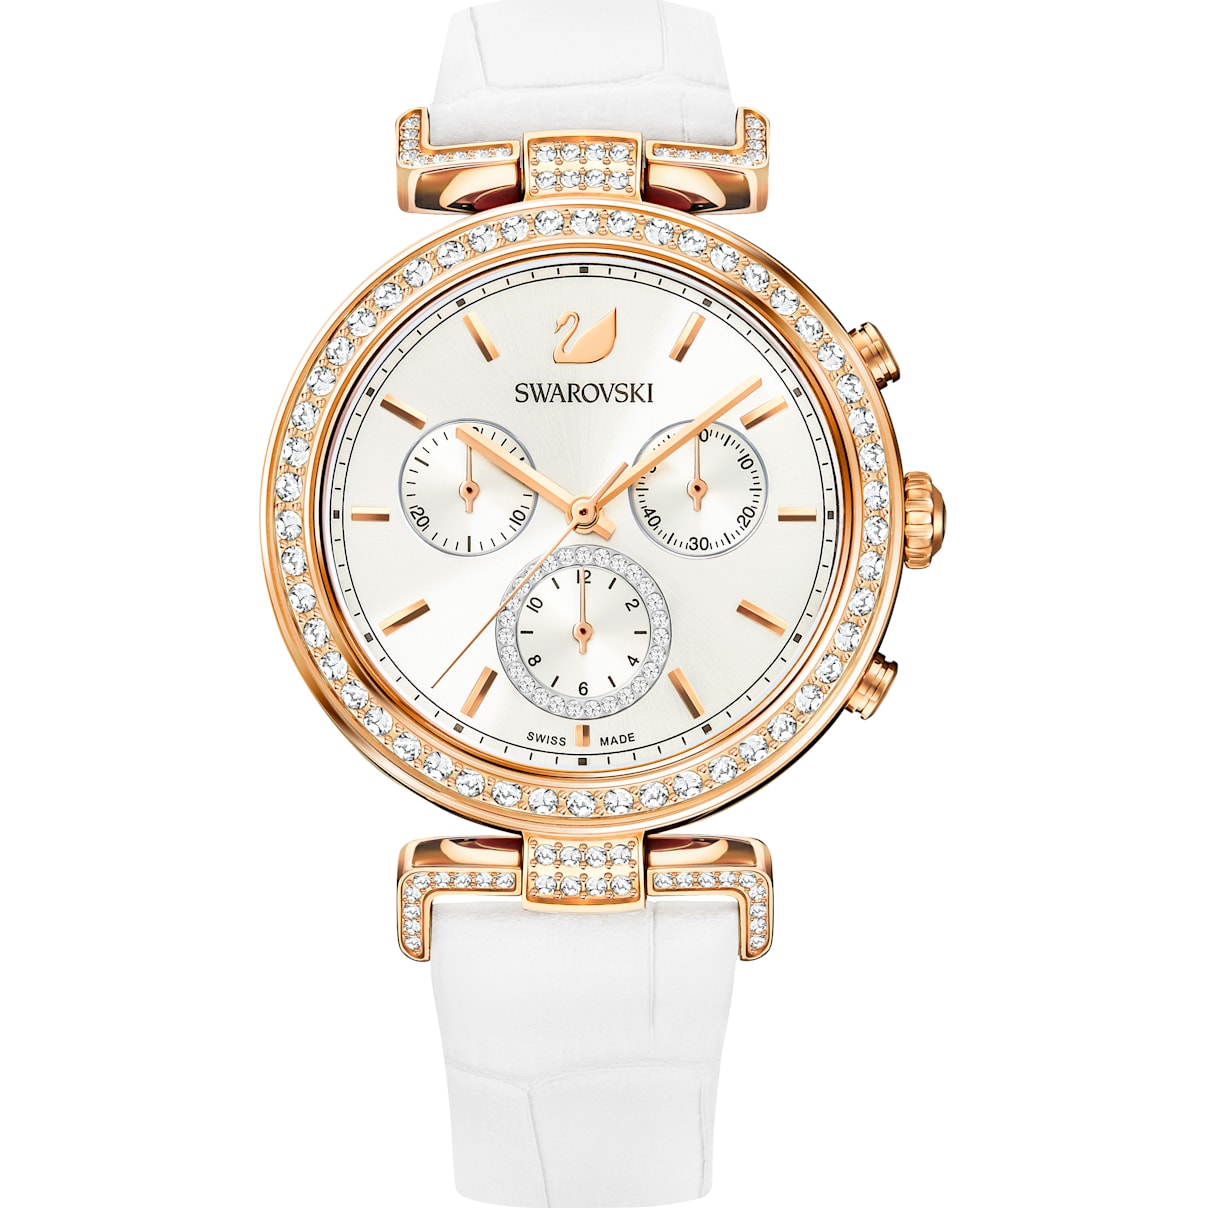 Swarovski Era Journey Watch, Leather strap, White, Rose-gold tone PVD